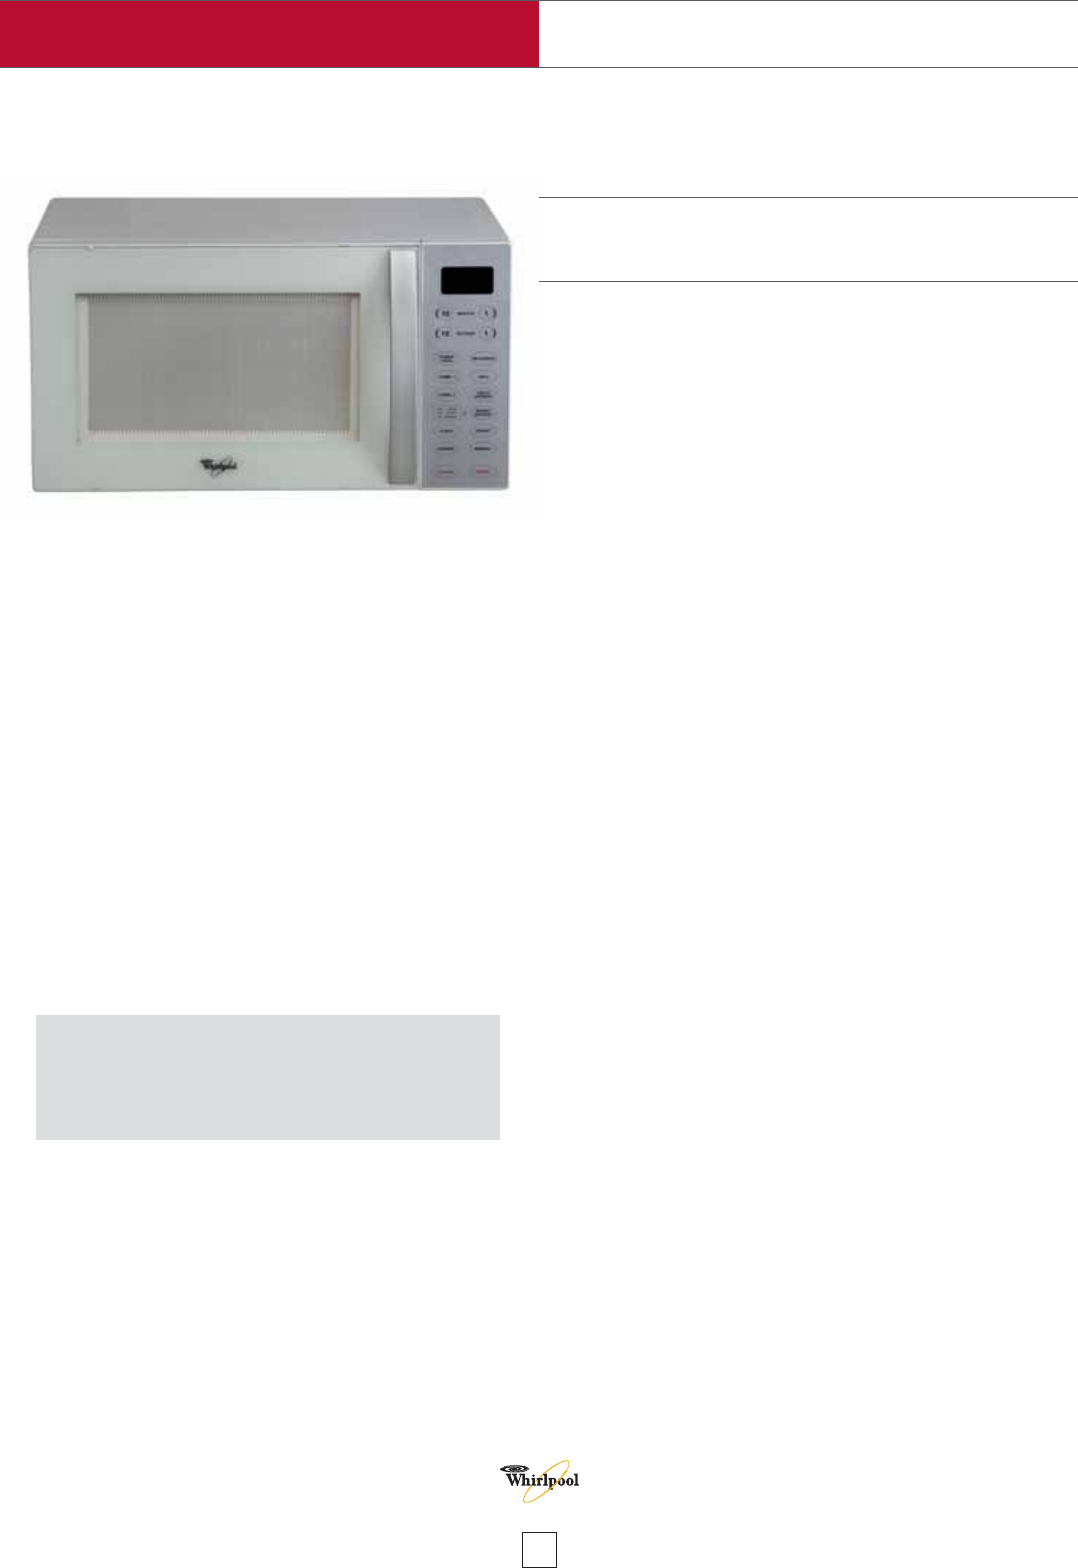 Whirlpool Mwo 611 Wh Microwave Oven User Manual Page 1